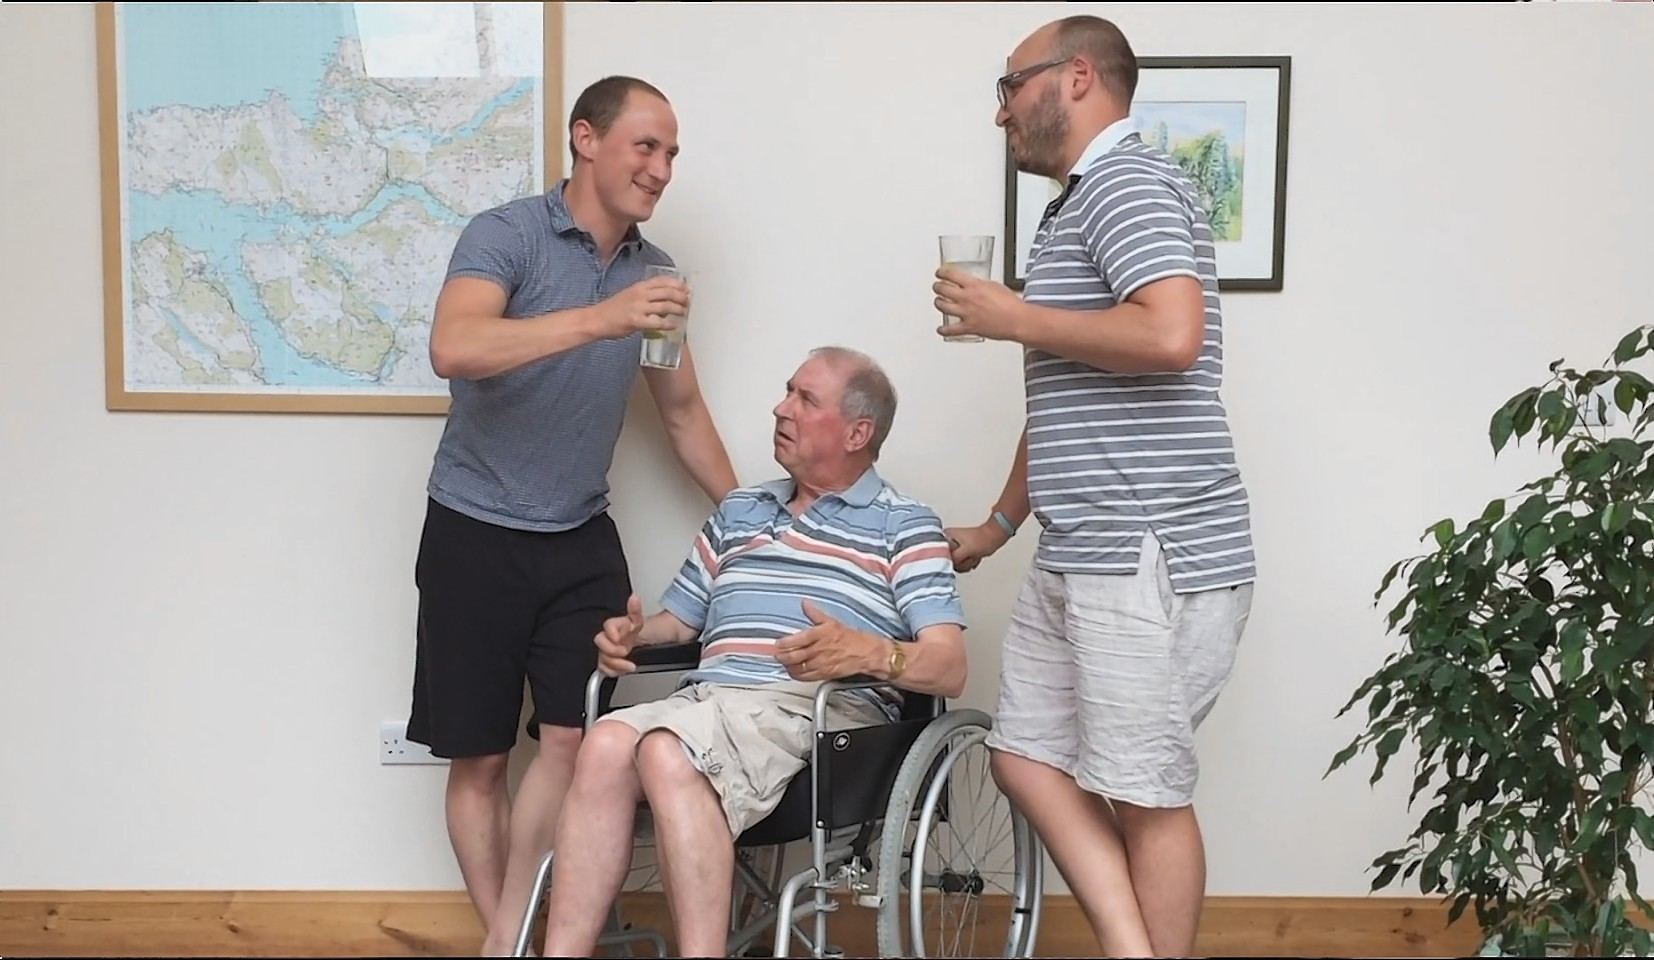 Stephen with sons, Duncan and Angus in one of the videos.